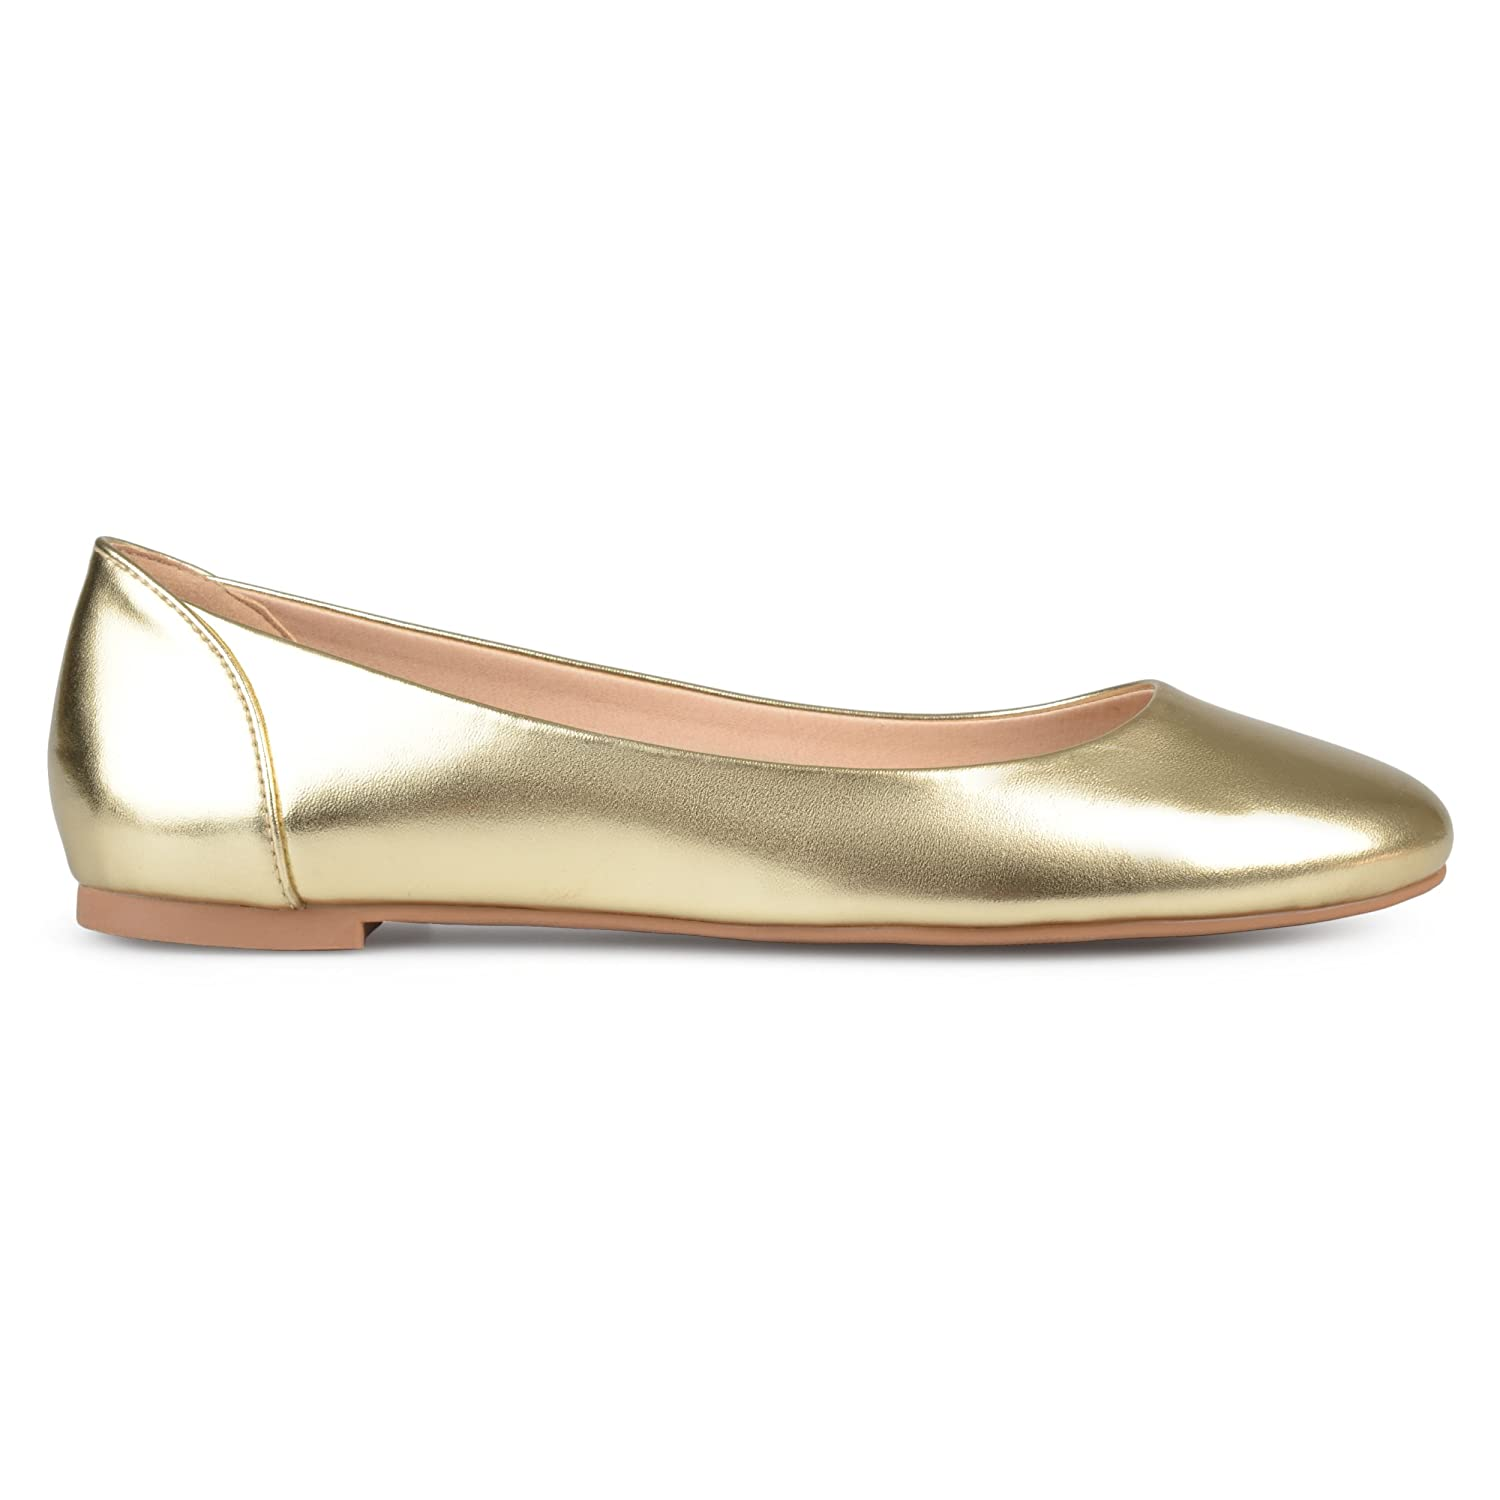 Brinley Co Womens Comfort Sole Faux Leather Round Toe Flats B073VSMRXY 8 B(M) US|Gold